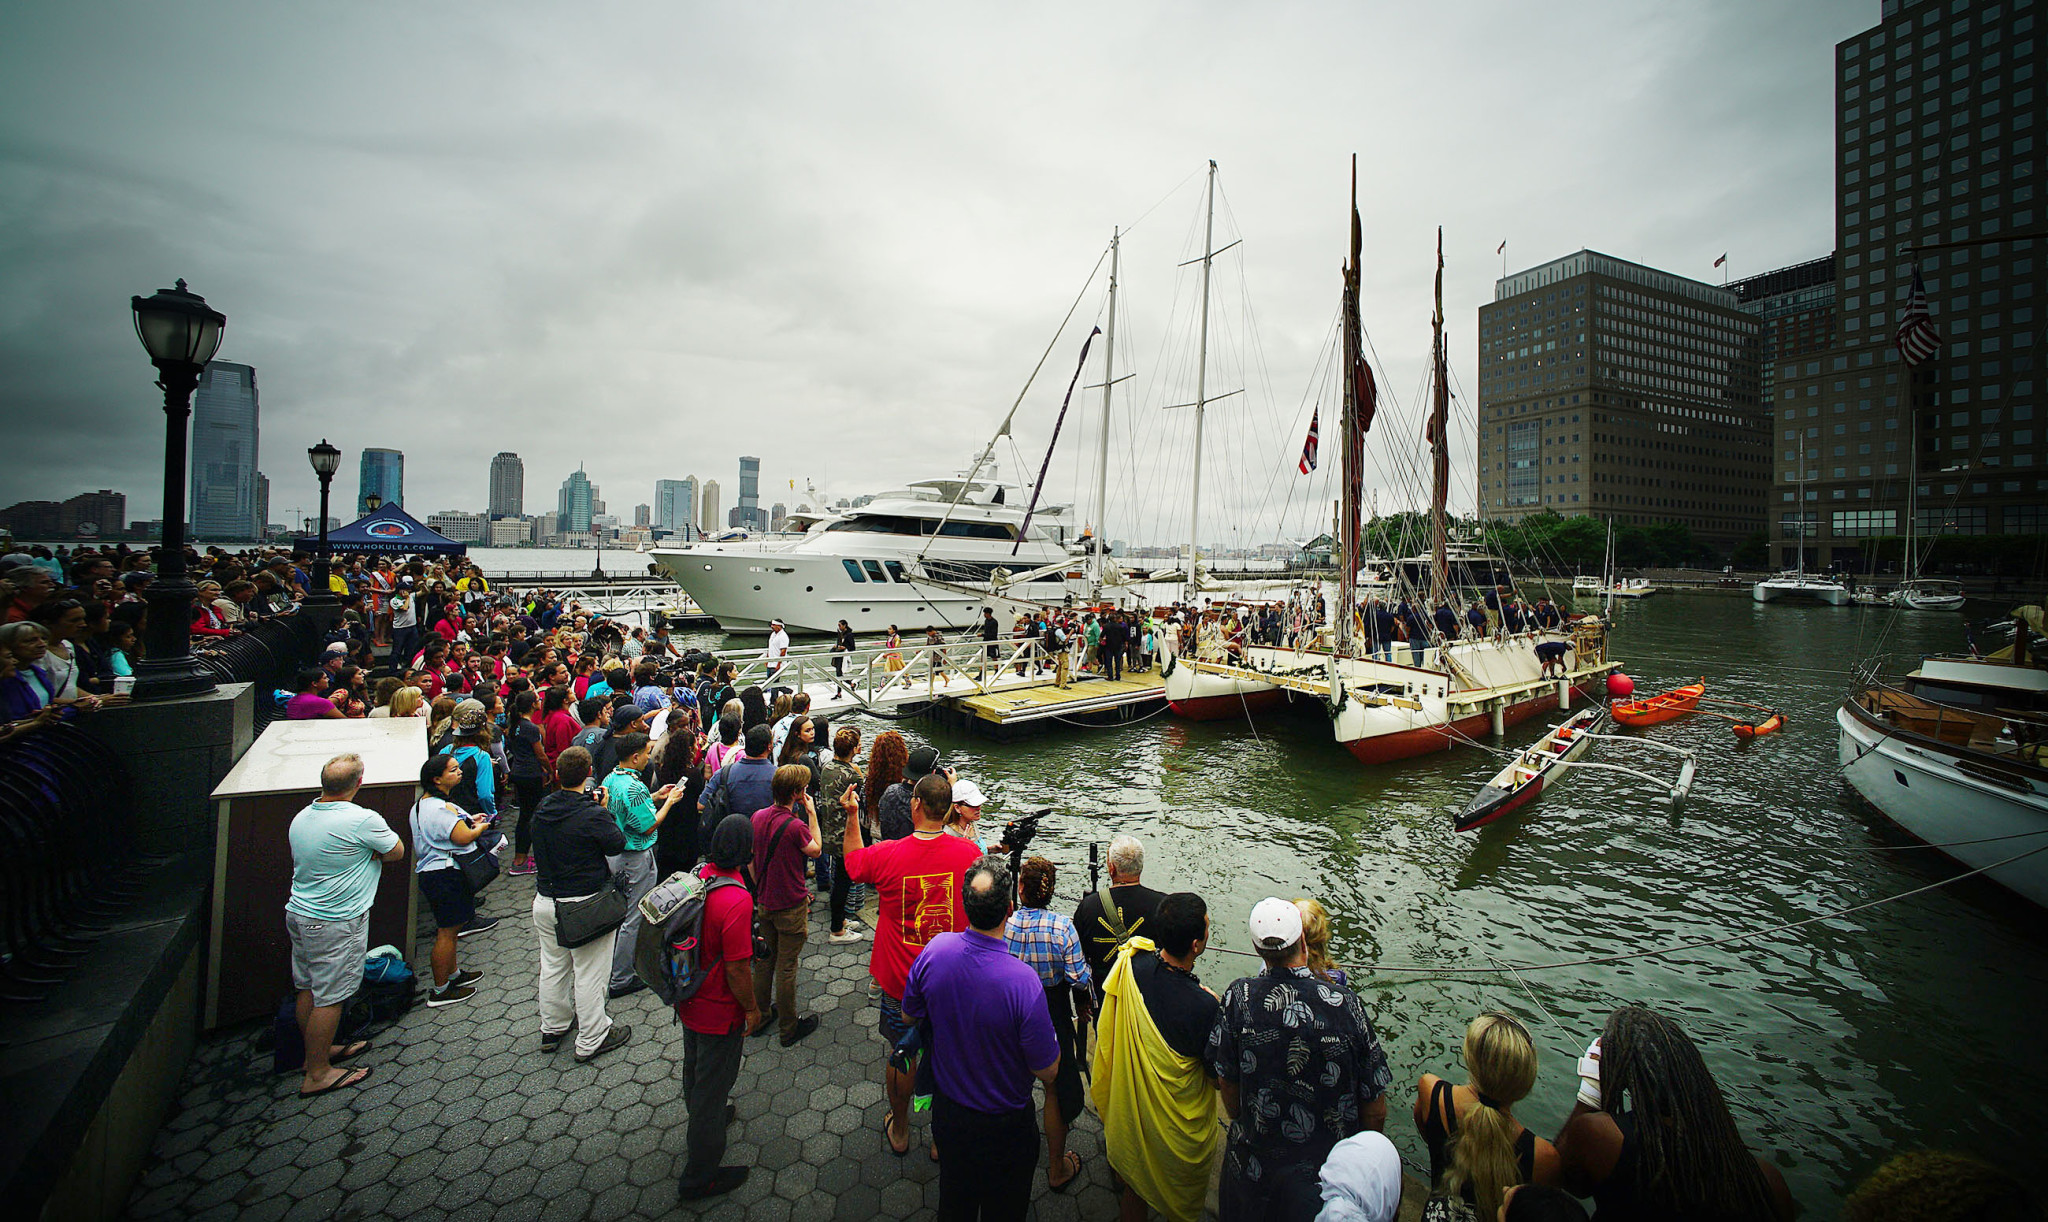 <p>June 5: During its three-year, around-the-world cruise, the double-hulled voyaging canoe Hokulea docks at Manhattan's North Cove Pier as Native American groups sing to greet the crew. <em>Cory Lum/Civil Beat</em></p>